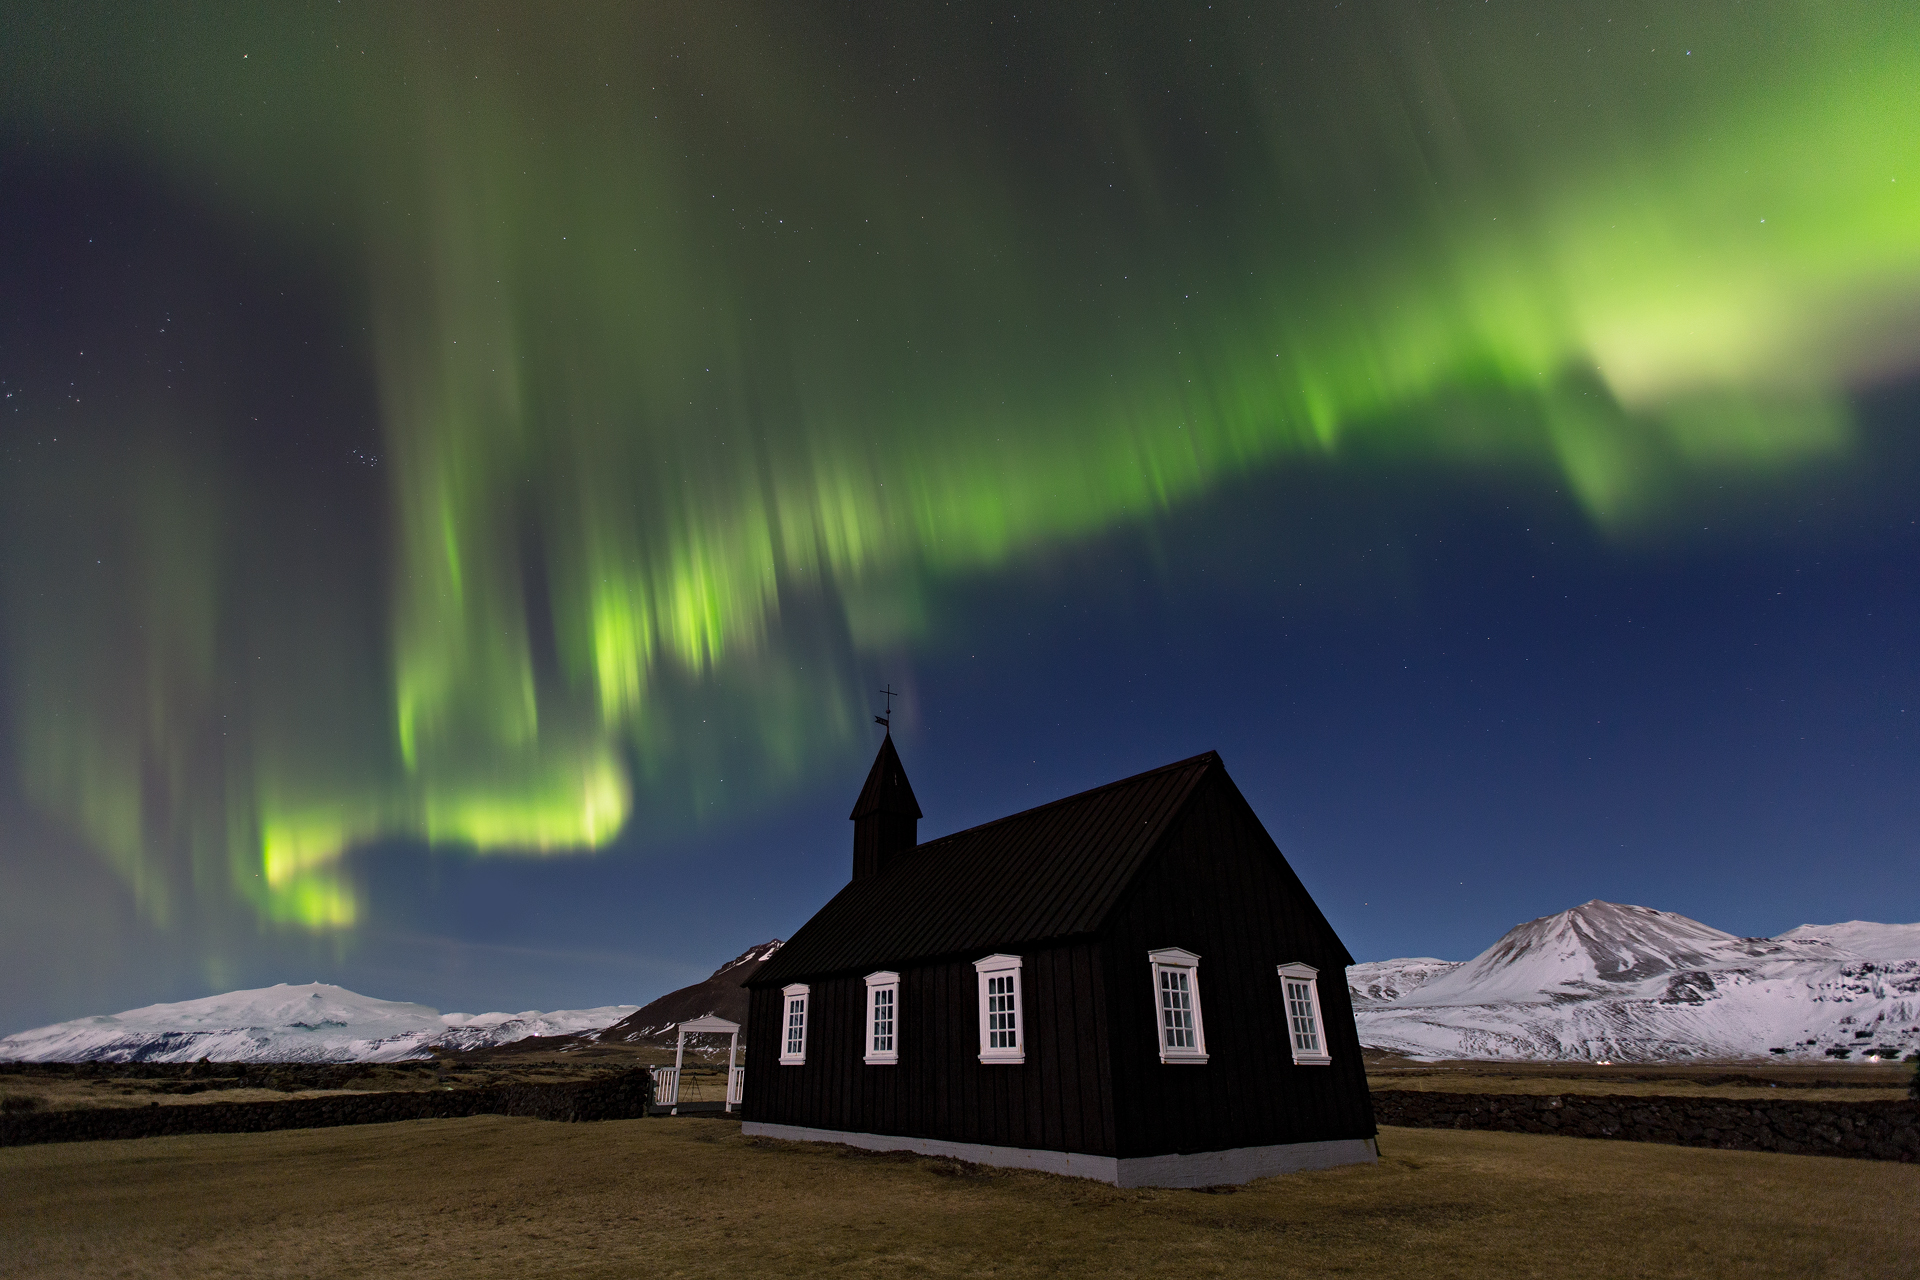 Northern Lights dance across the sky above this charming black church on the Snæfellsnes Peninsula.